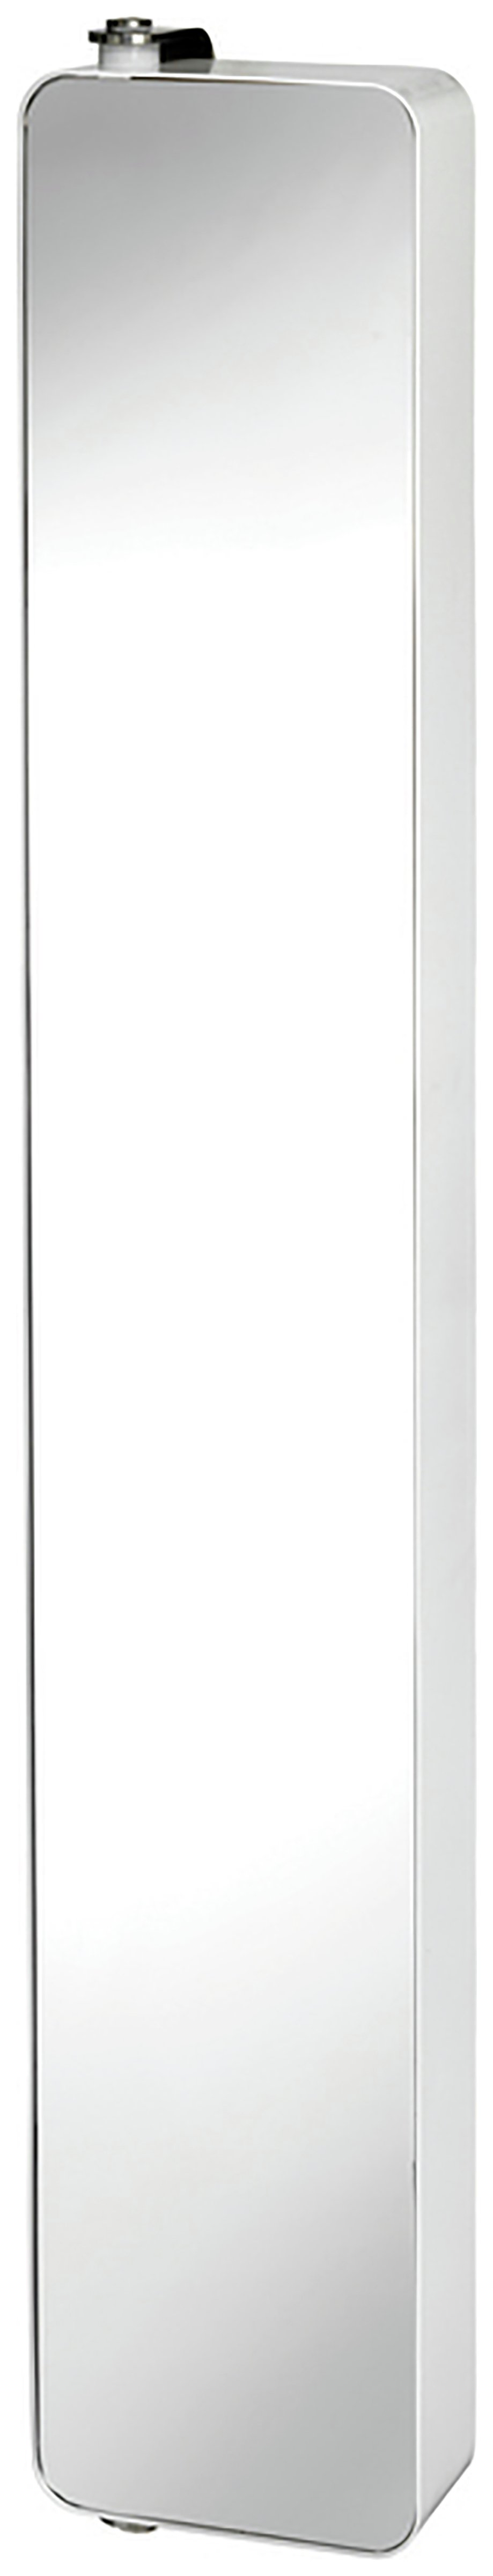 Image of Croydex Arun St Steel Tall Pivoting Mirror Cabinet - White